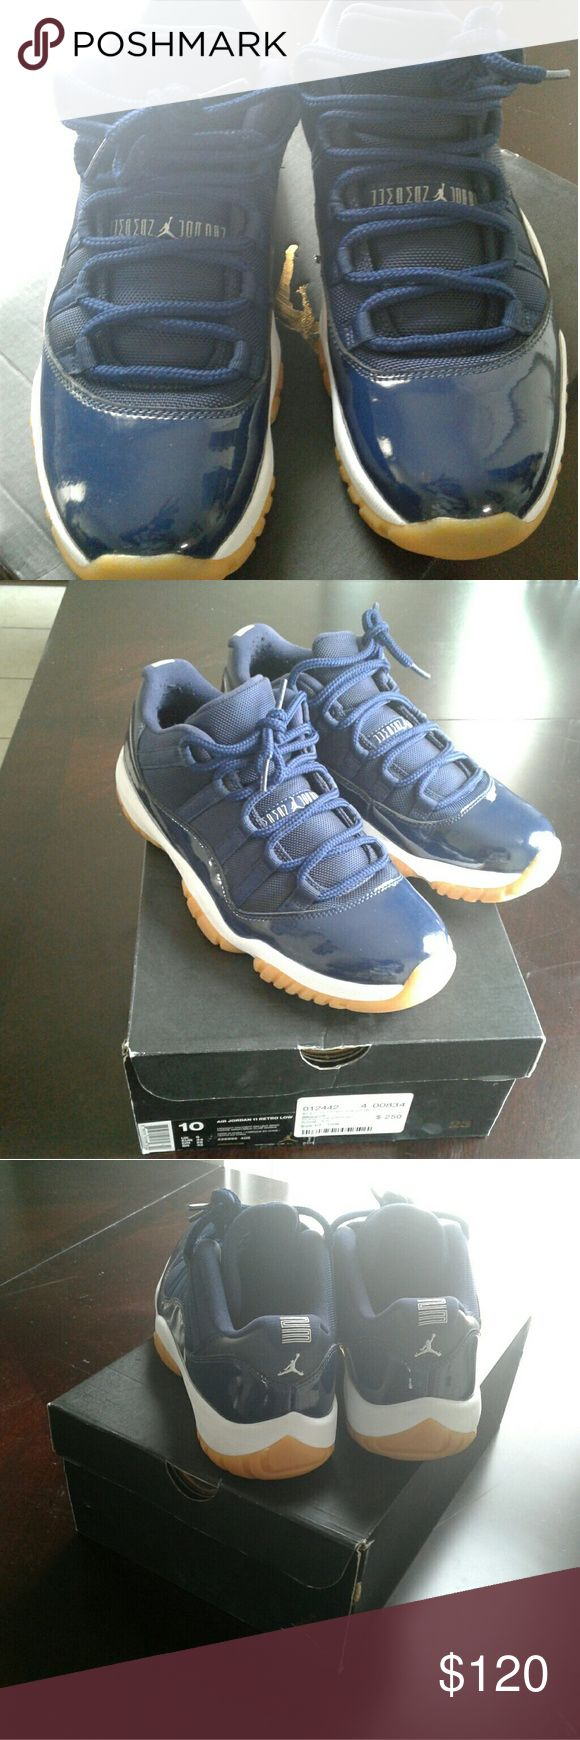 Retro jordan 11 navy gum bottoms It has navy blue patent leather,and nice duralable gum bottom so the shoe will last.its in mint condition,no creases or damage has been made to the shoe, it still has that new fresh out the box smell only worn once. I only do in public meet ups only, so if you are in brockton ma, and are intrested let me know, no delivery Jordan Shoes Sneakers